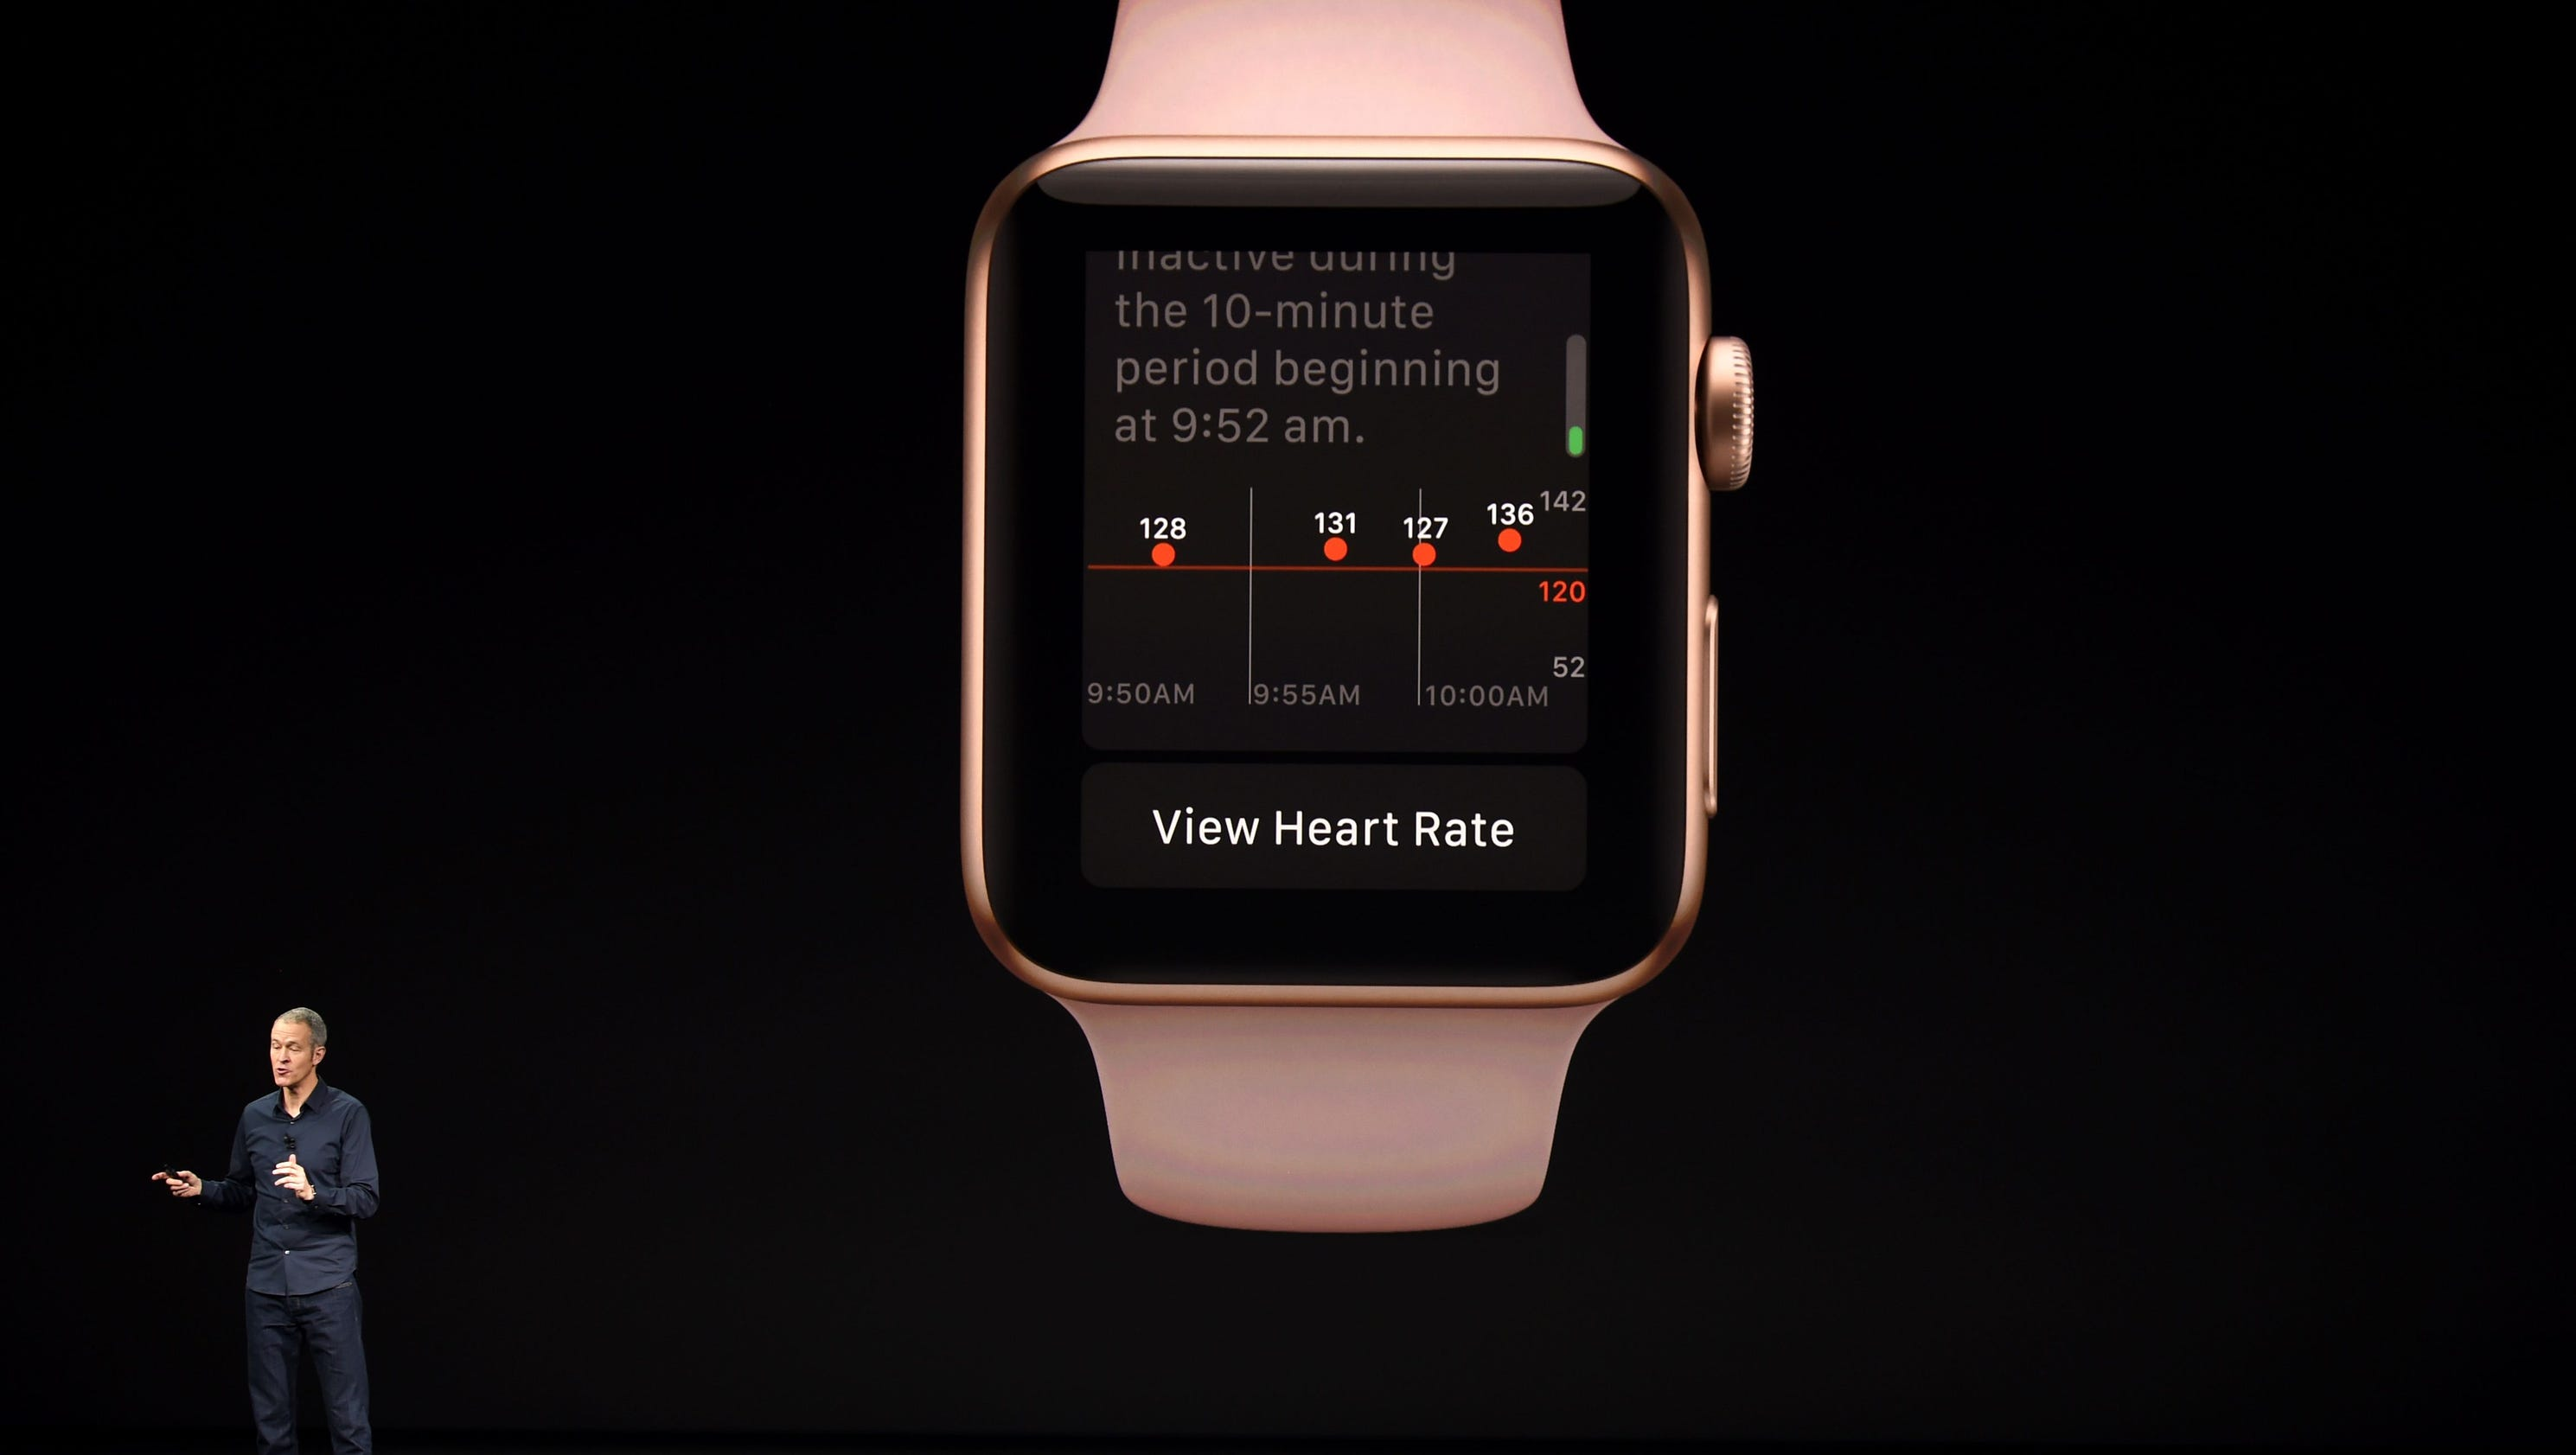 Apple Watch review: Ditch the iPhone